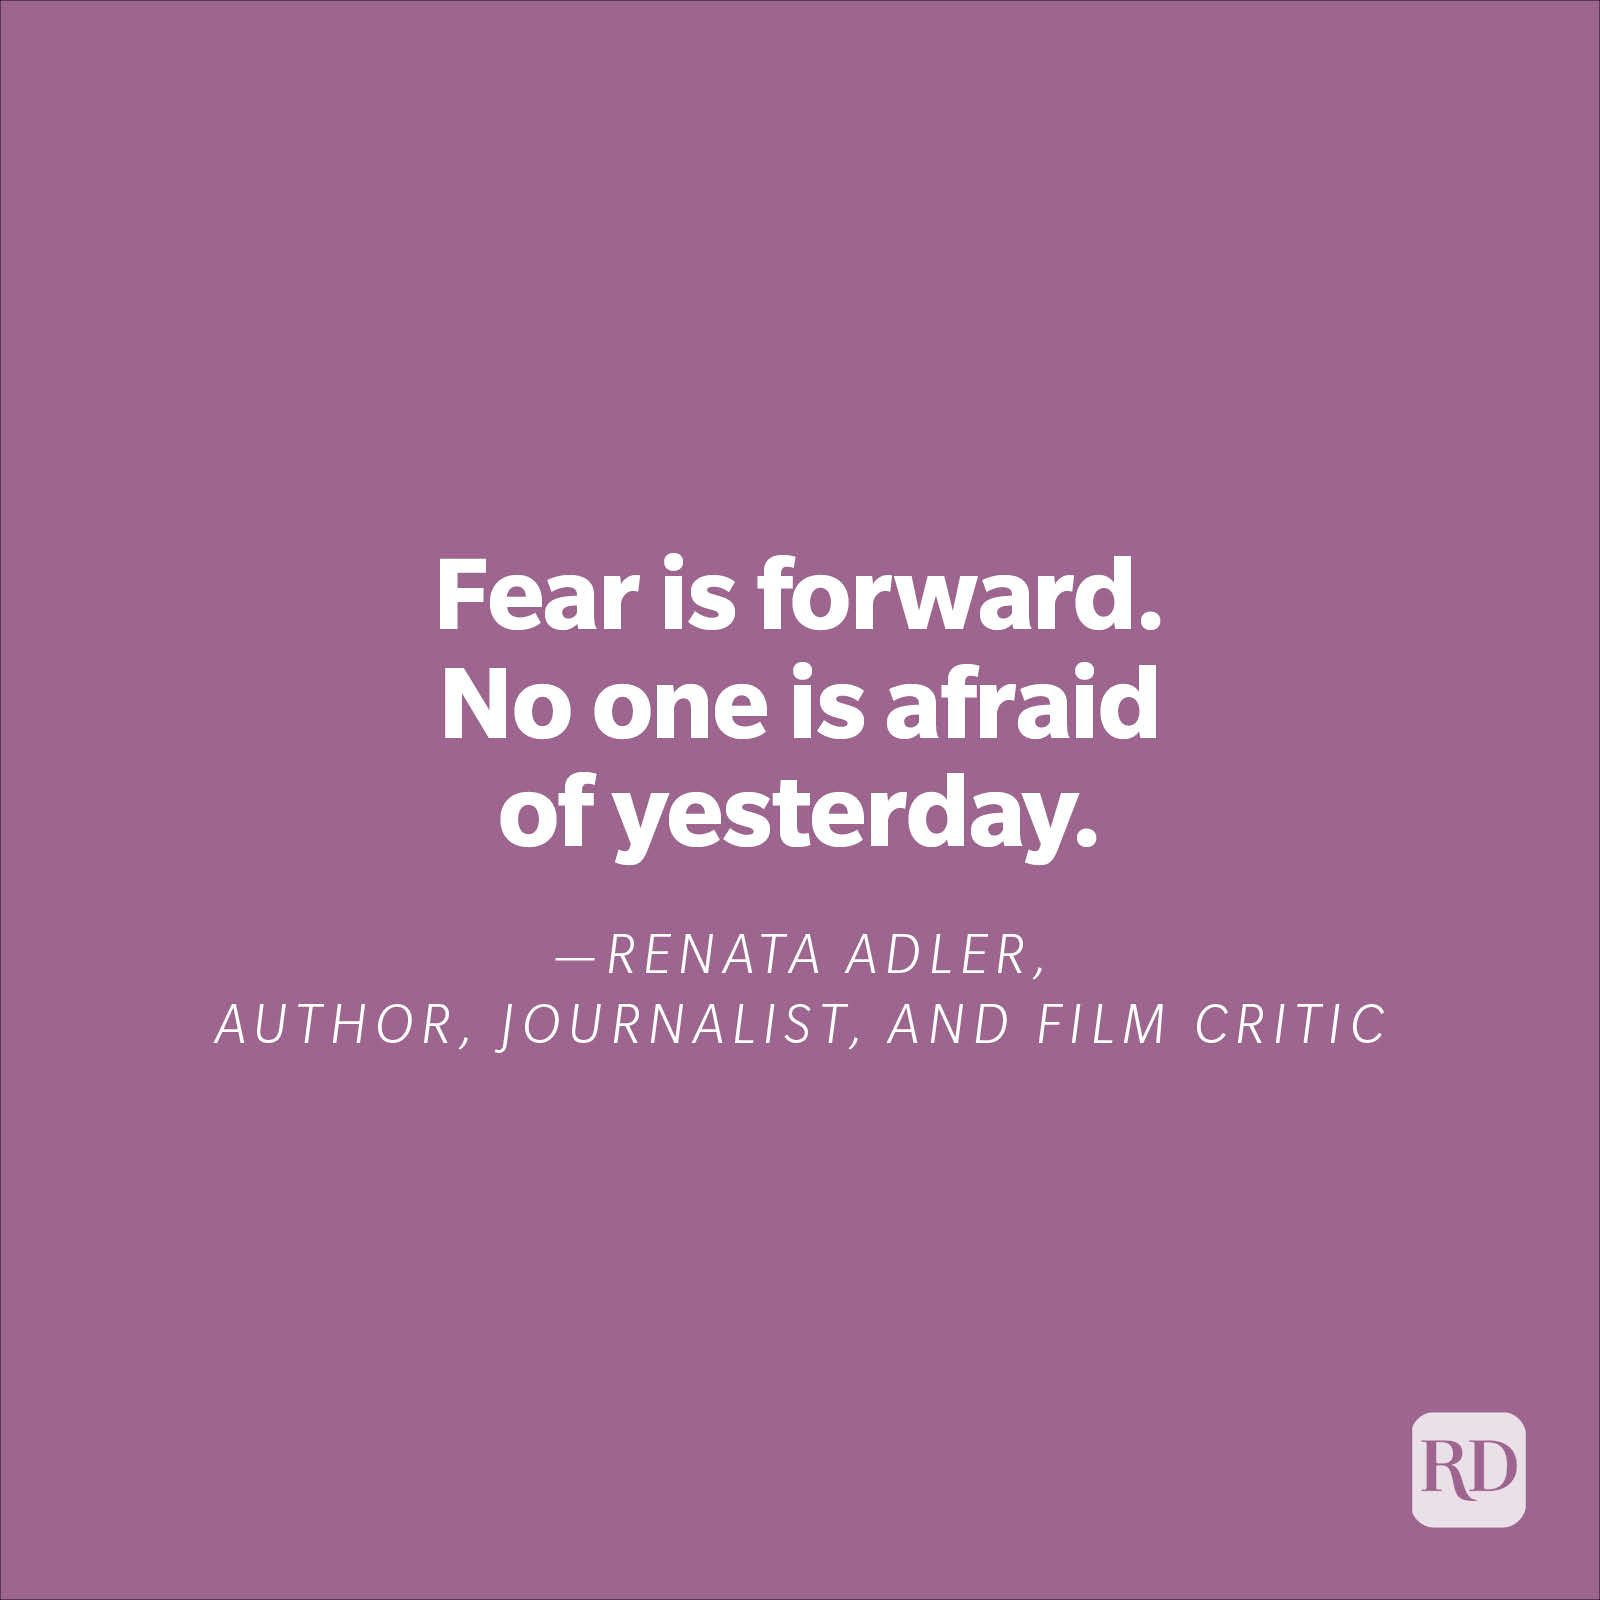 """""""Fear is forward. No one is afraid of yesterday.""""—Renata Adler, author, journalist, and film critic"""